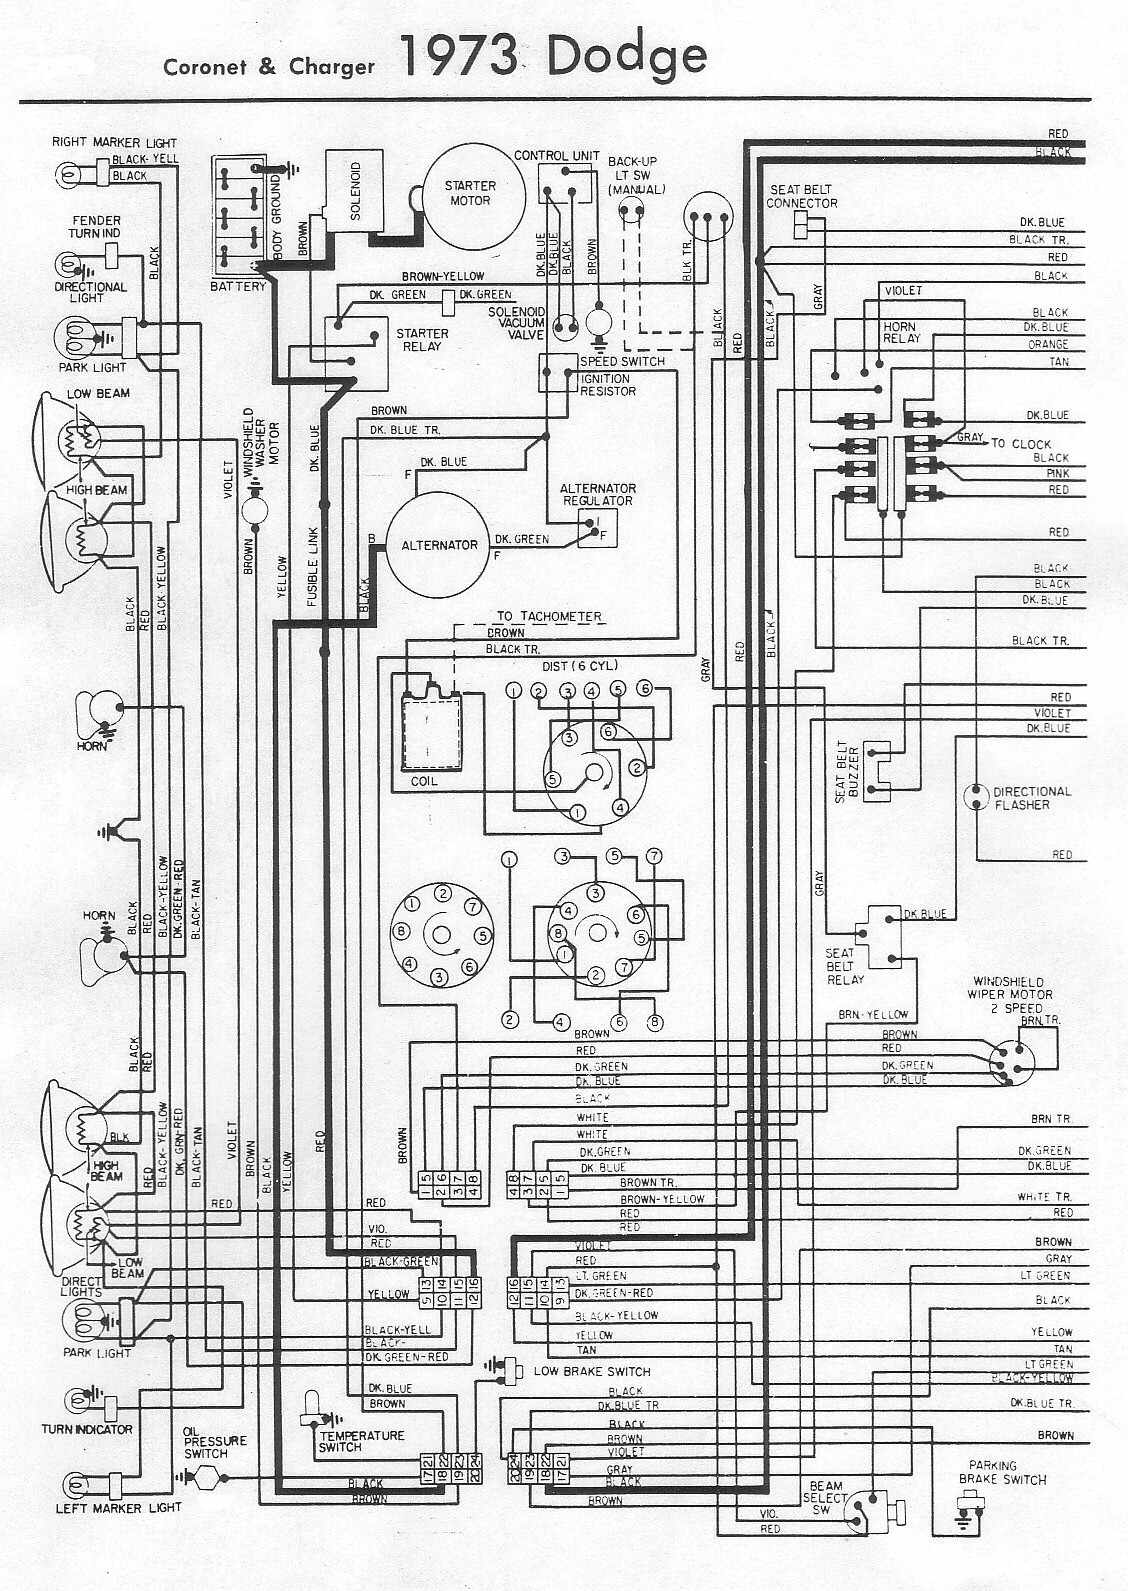 Dodge Car Manuals Wiring Diagrams Pdf Fault Codes Ignition Diagram Download